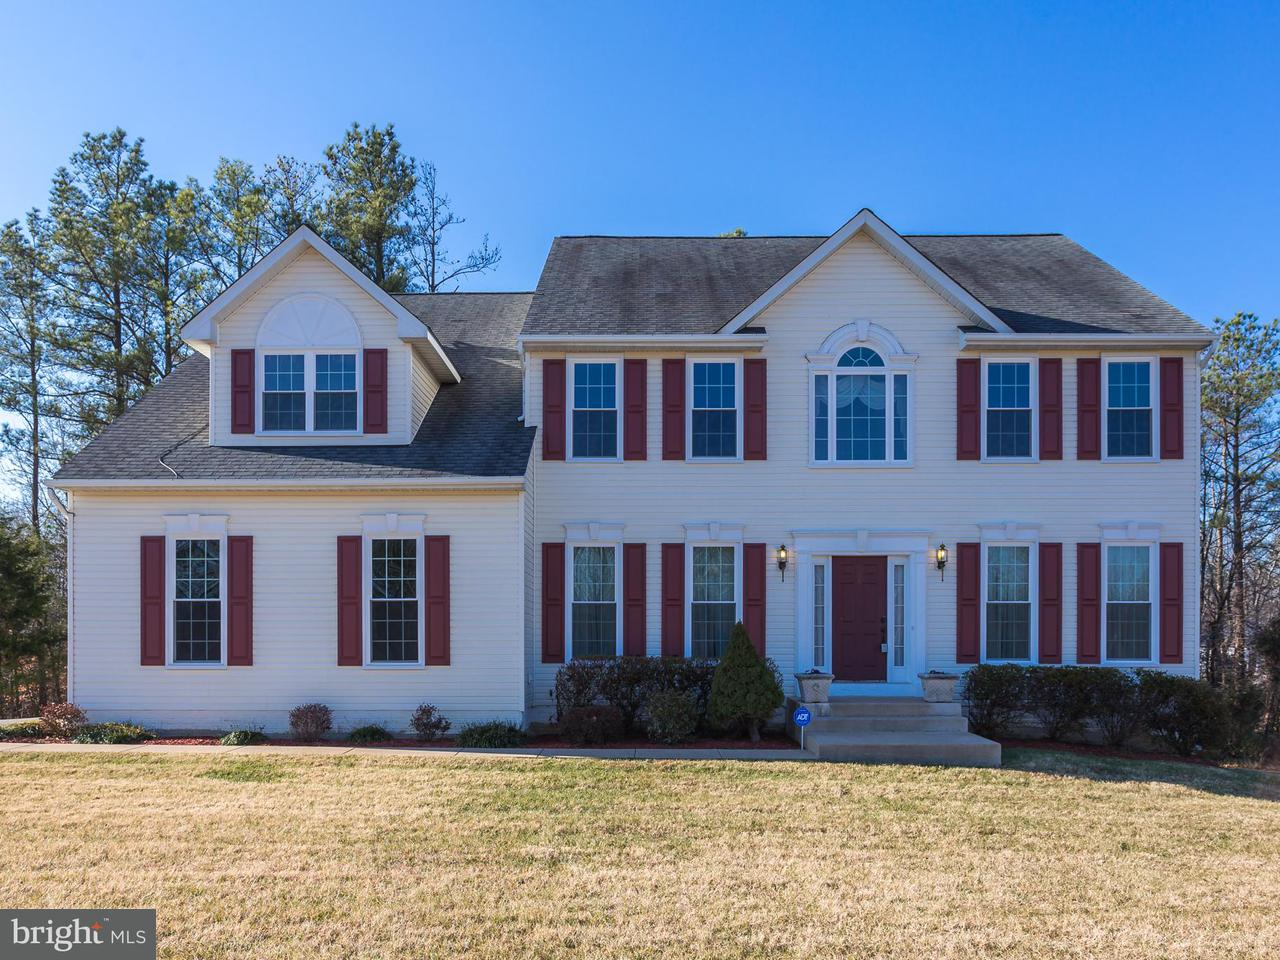 Single Family Home for Sale at 8248 Saddle Drive 8248 Saddle Drive King George, Virginia 22485 United States